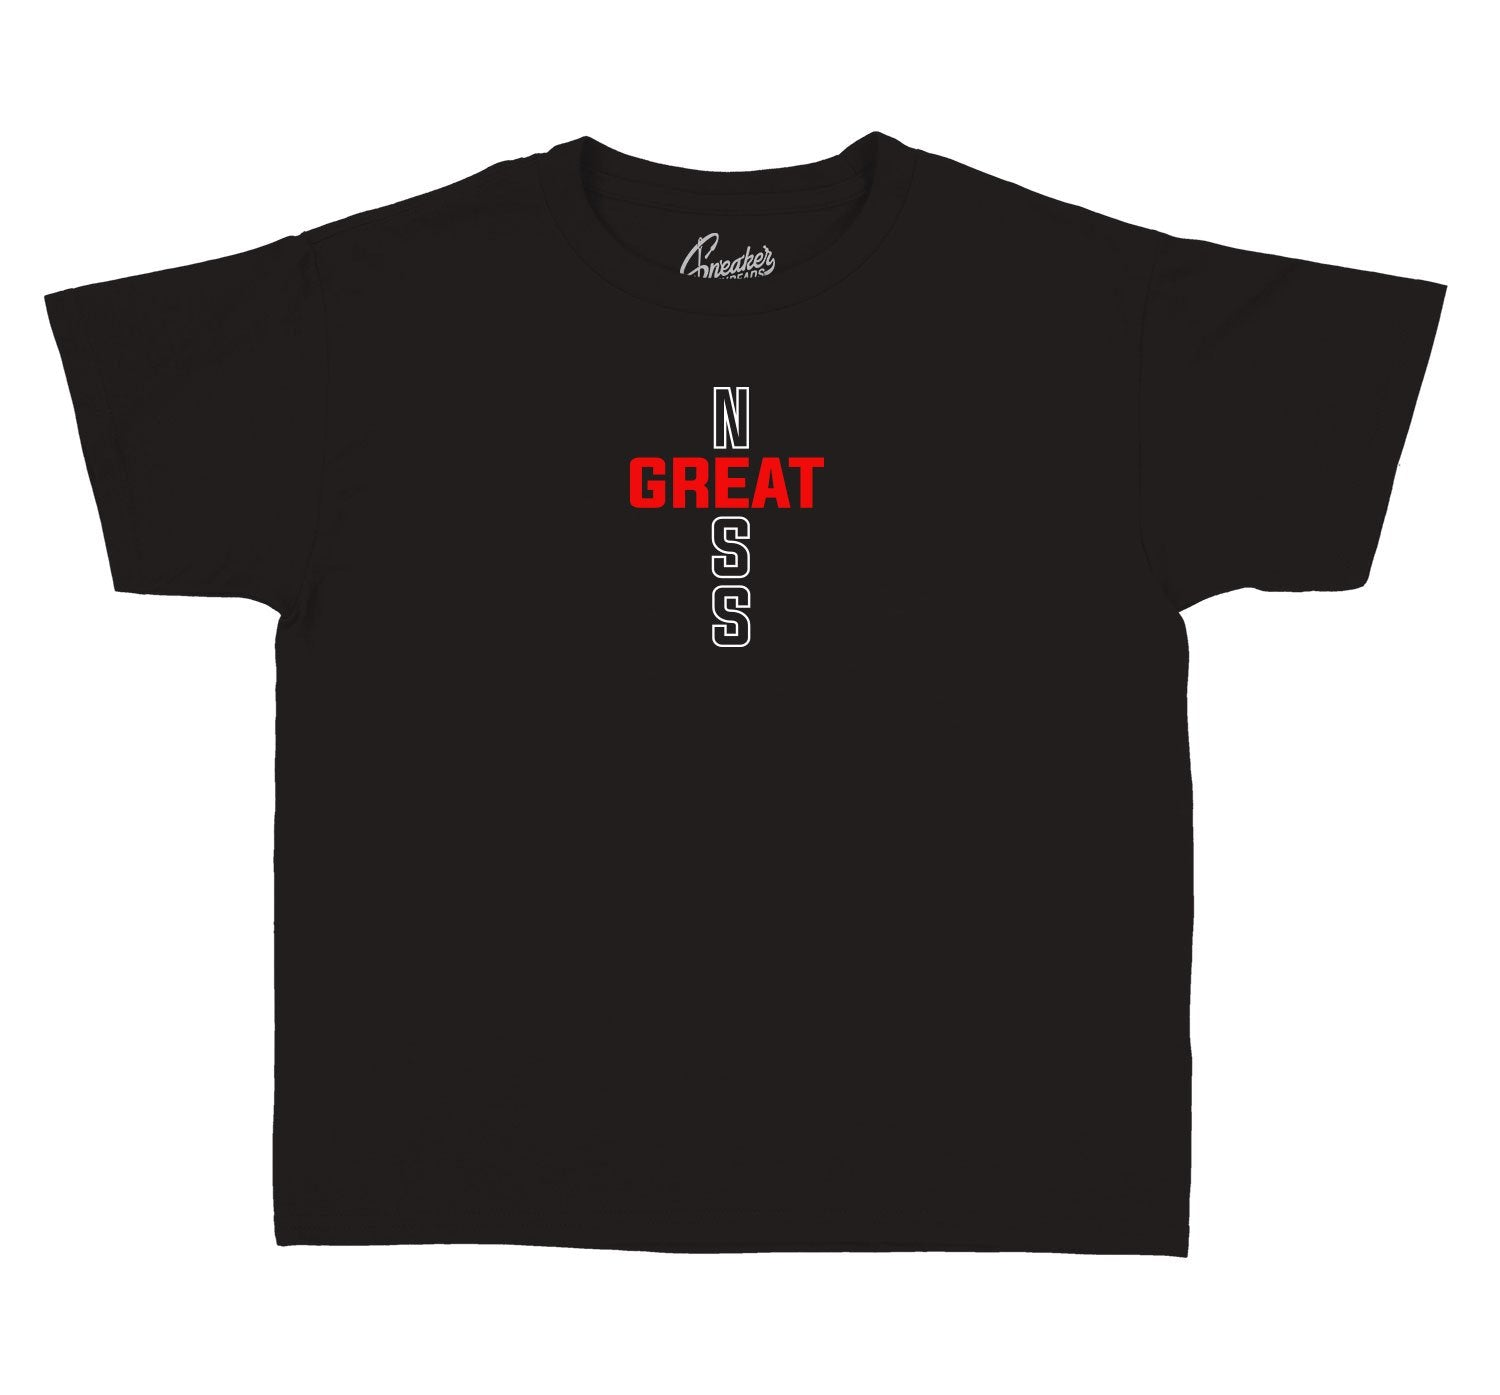 Jordan 11 Bred sneaker collection matching kids shirt collection perfect